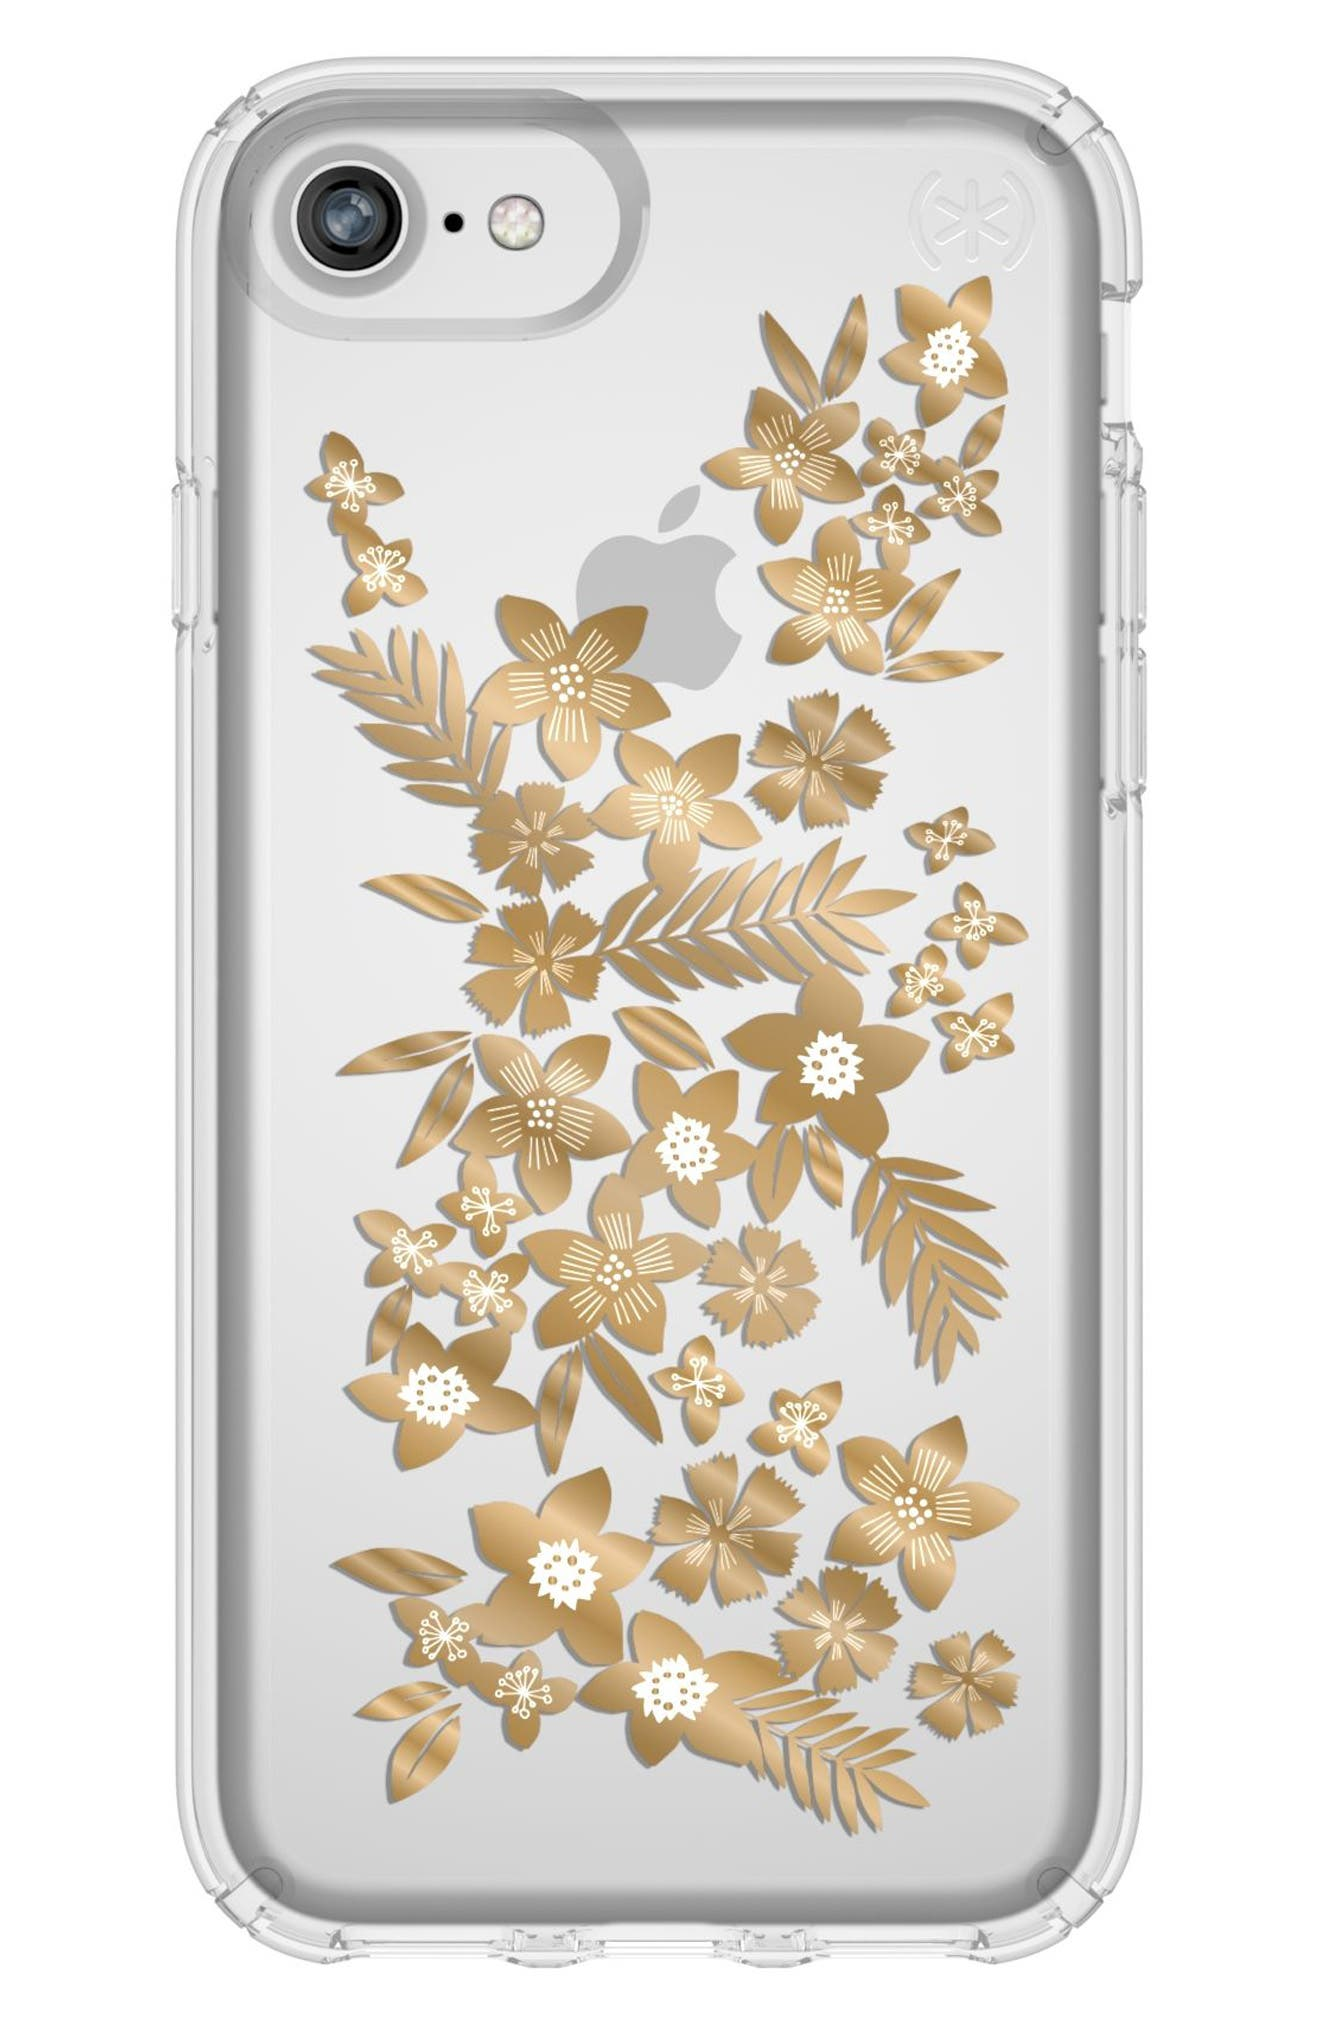 Speck Transparent Shimmer Floral Metallic iPhone 6/6s/7/8 Case